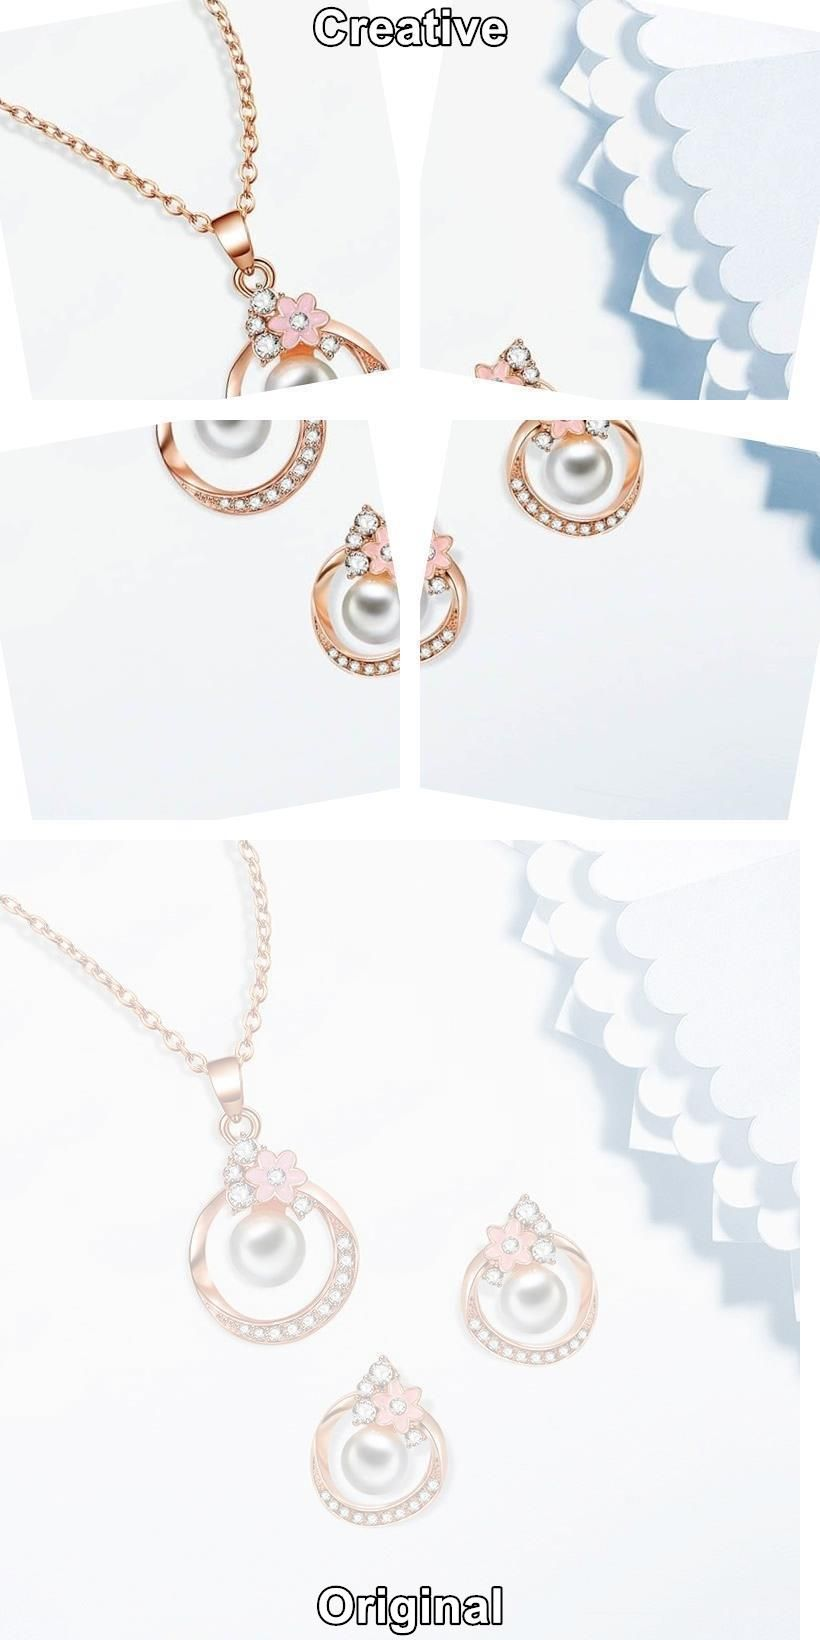 28+ Best stores for costume jewelry ideas in 2021